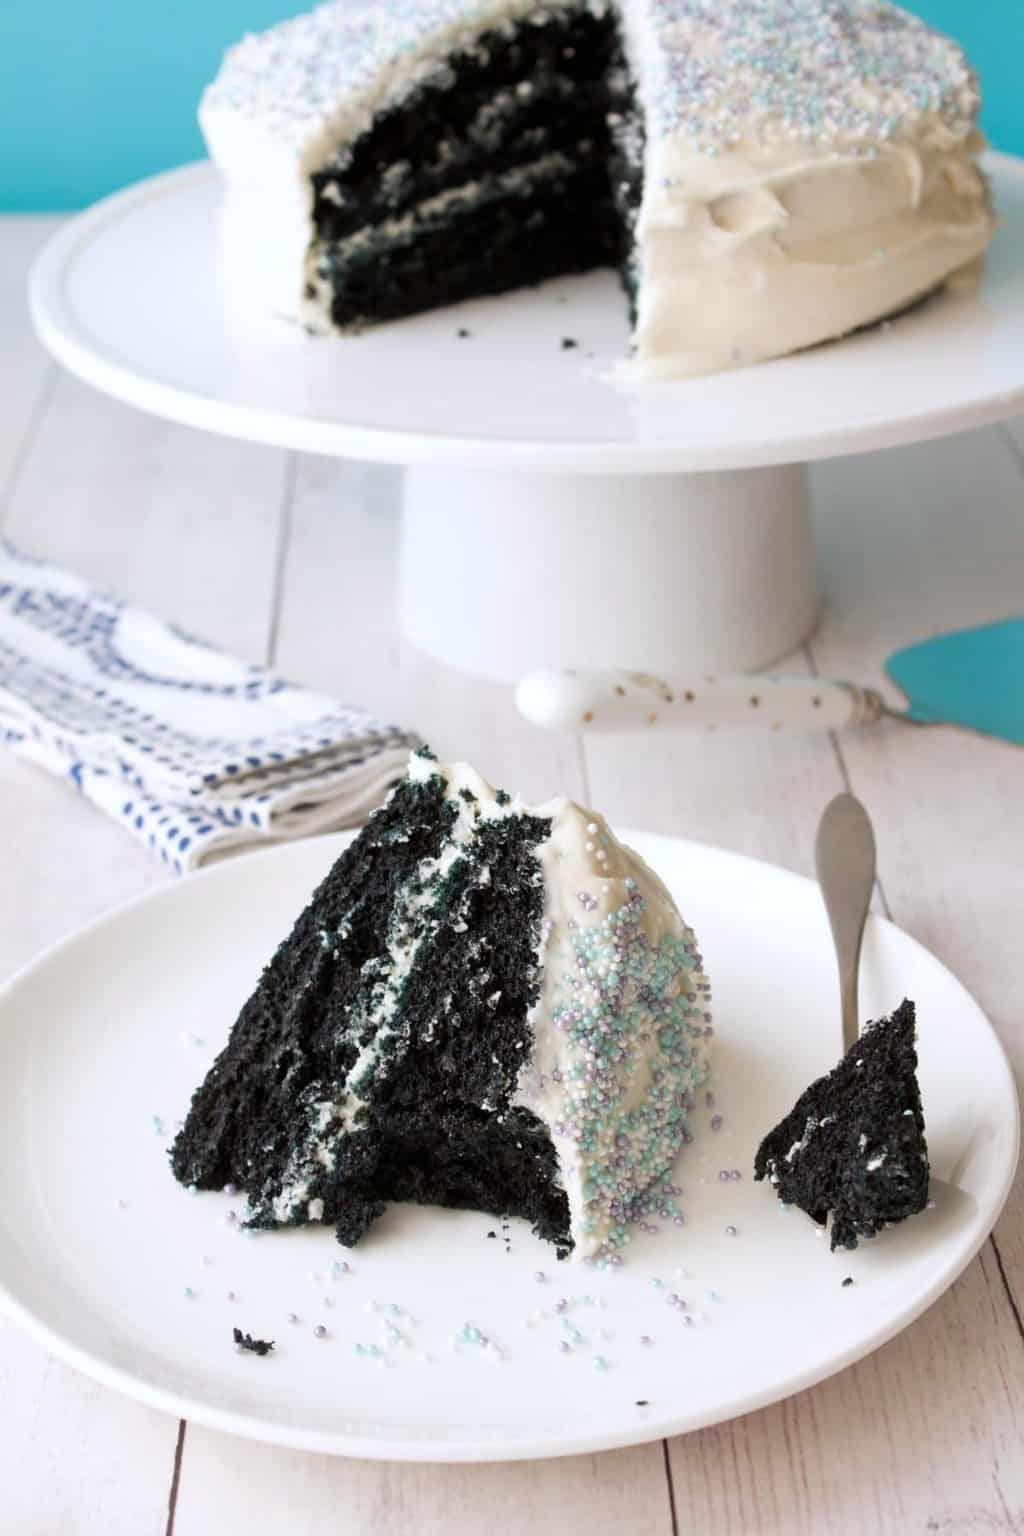 Vegan Blue Velvet Cake. Midnight blue cake frosted with vegan vanilla frosting. Simple, moist and delicious! #vegan #lovingitvegan #dessert #cake #bluevelvet